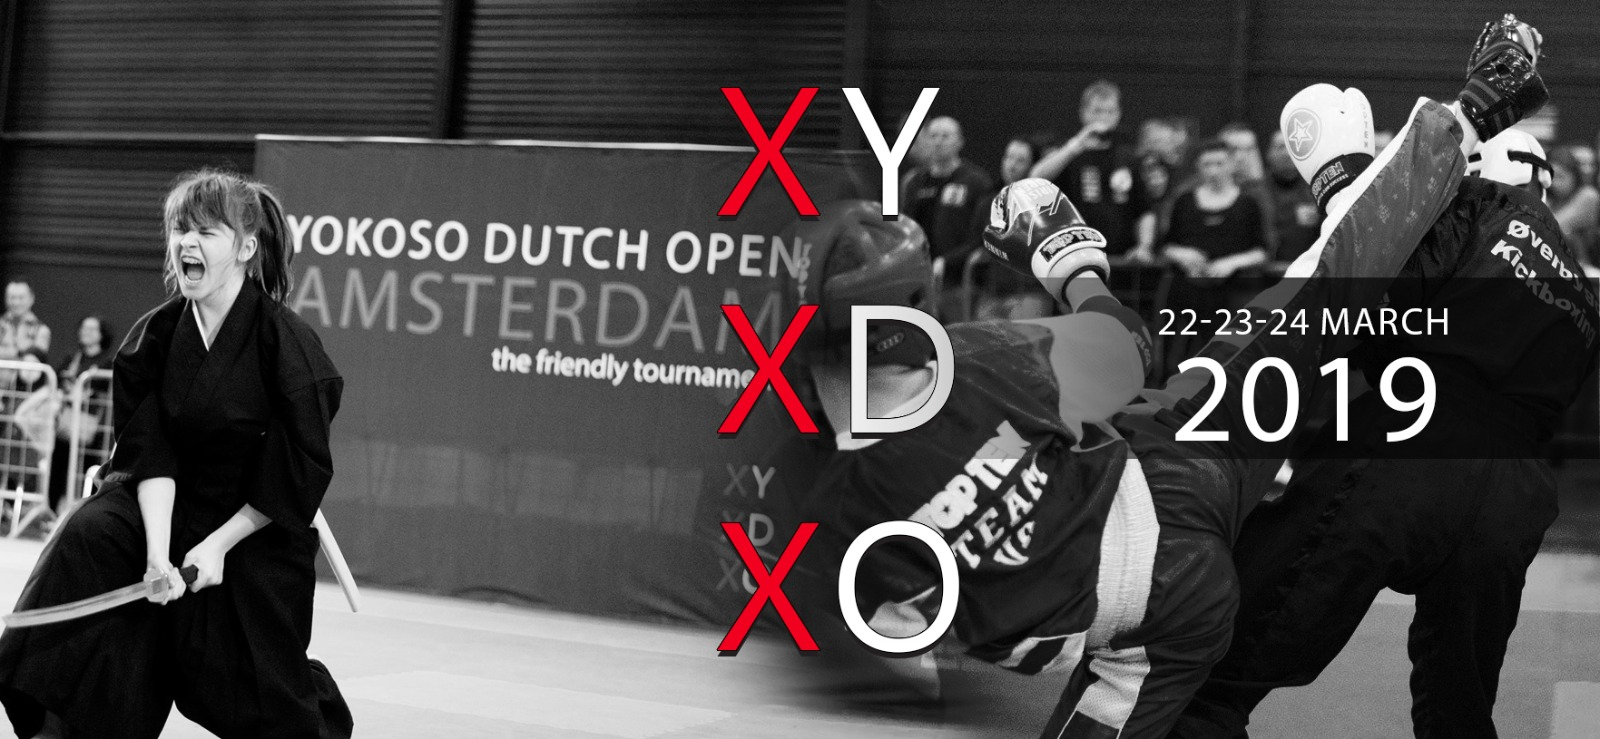 Yokoso Dutch Open